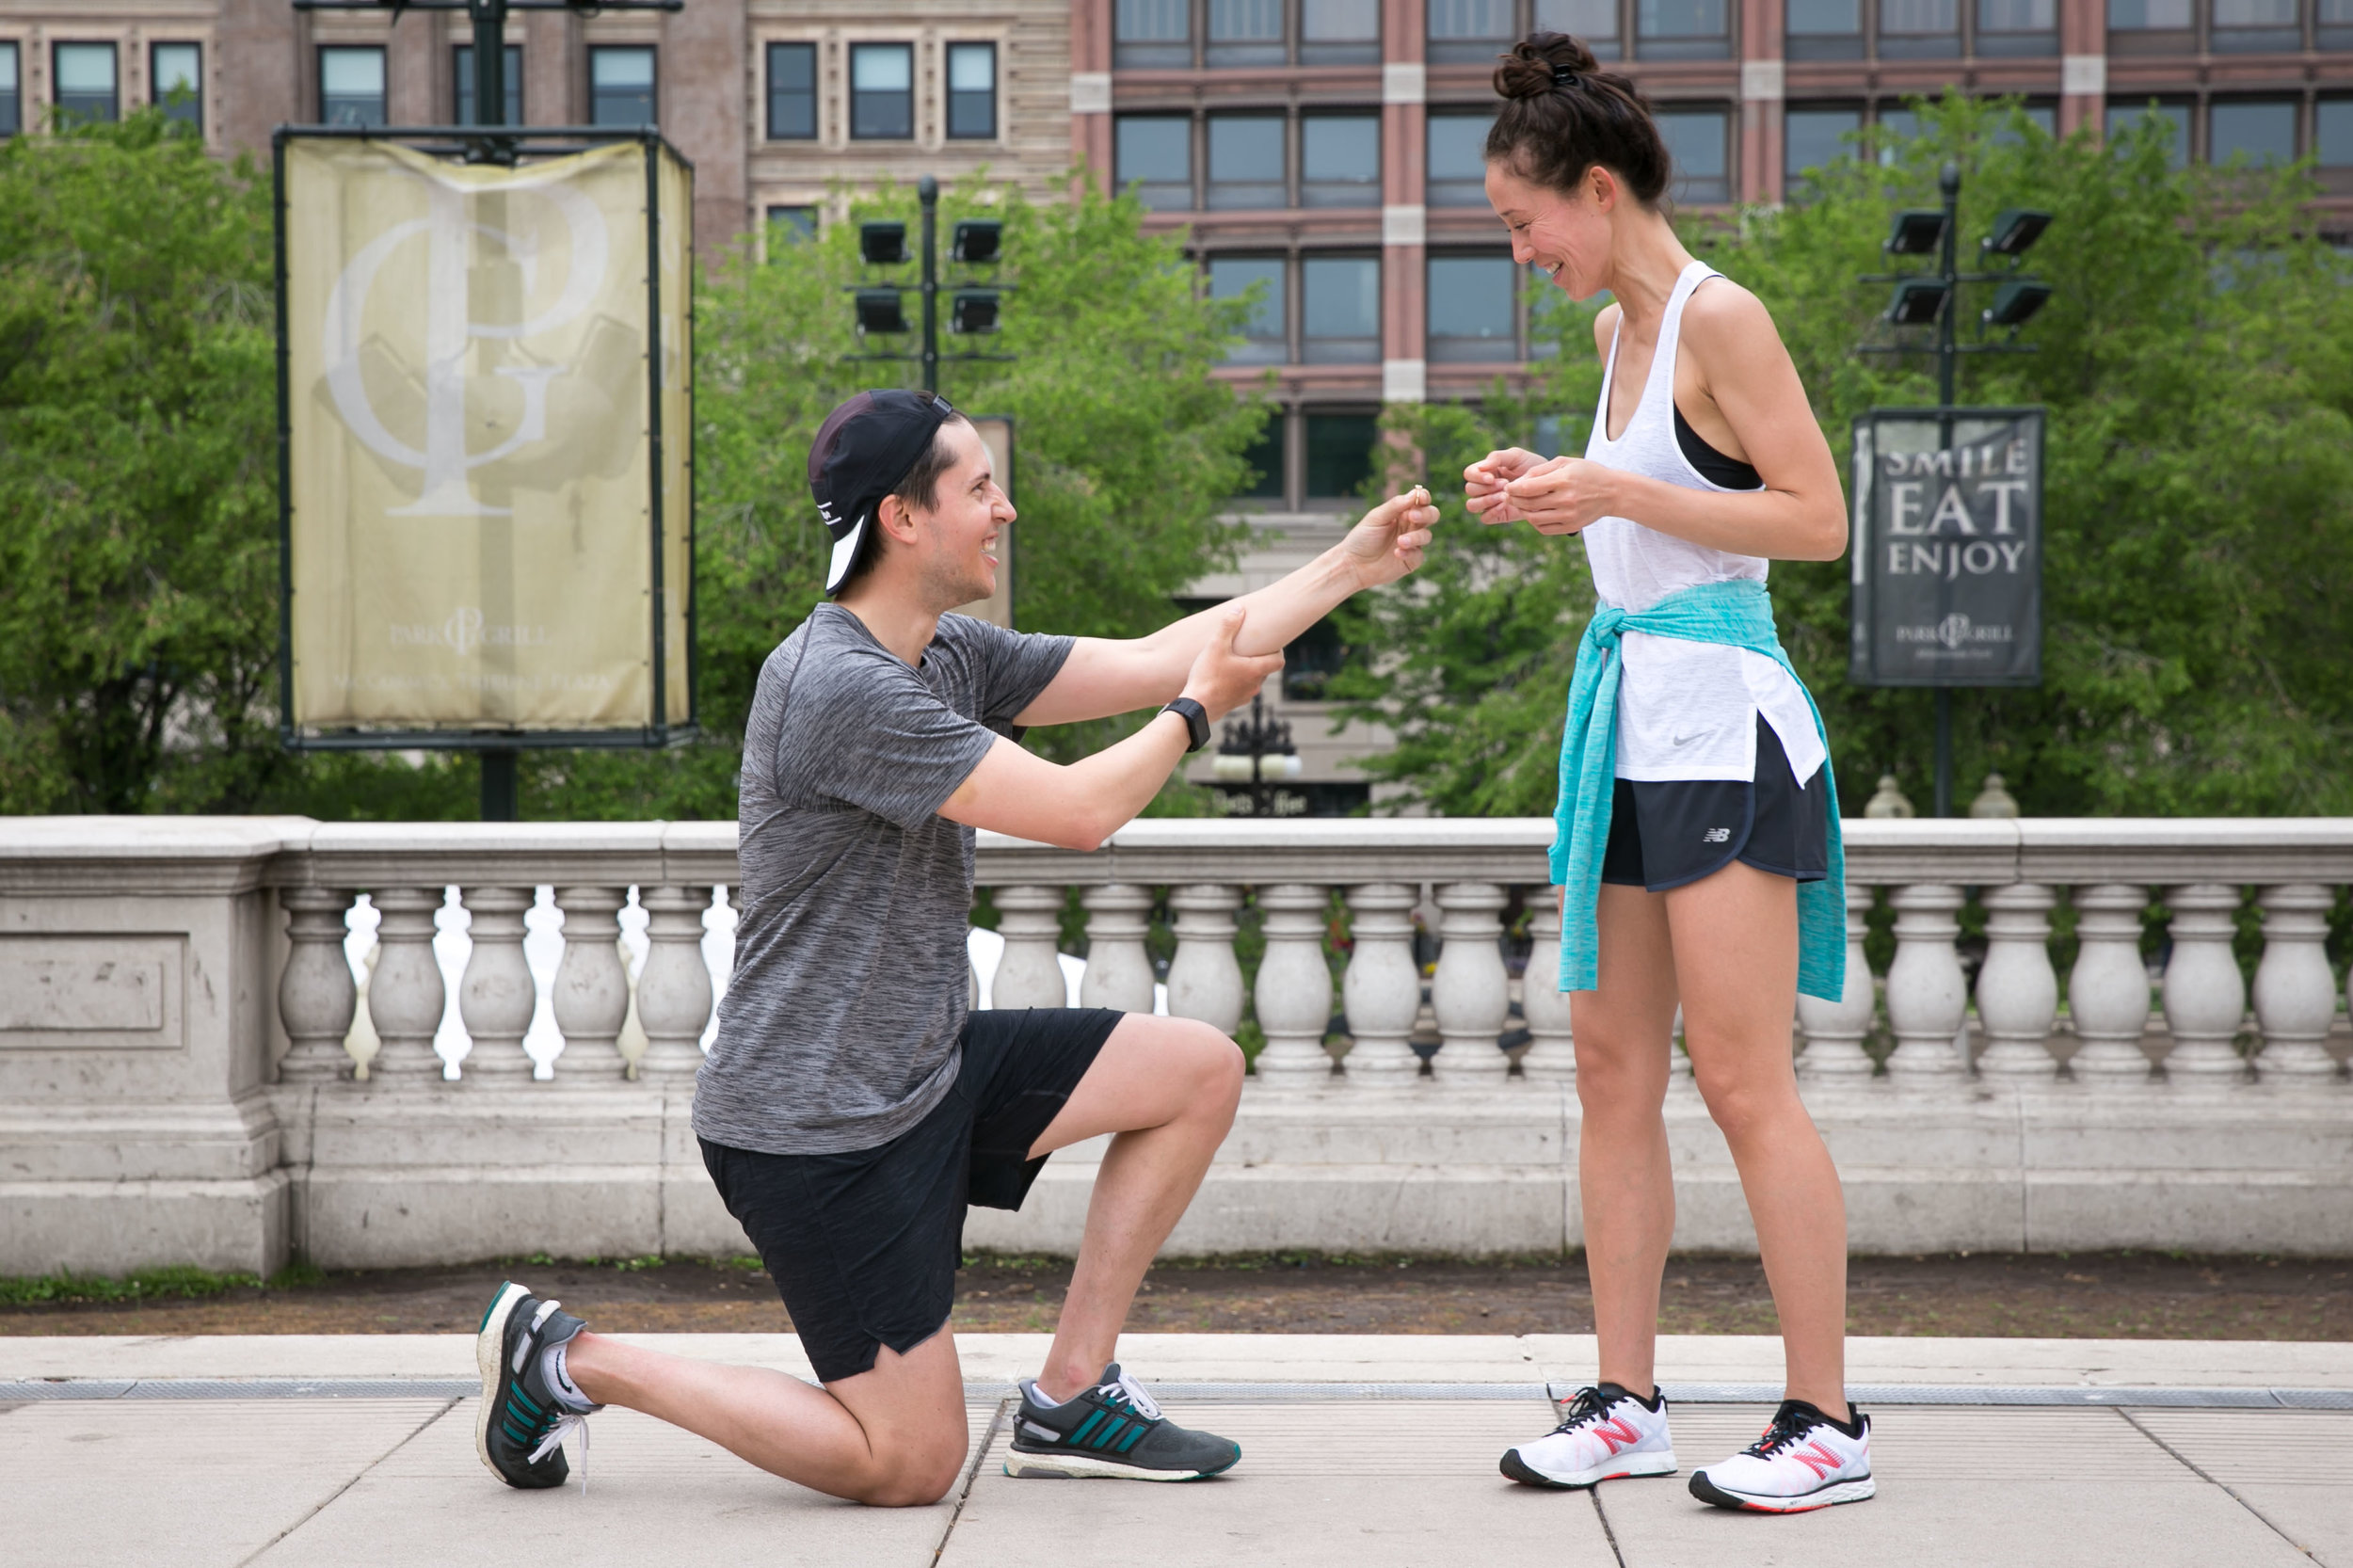 Jamie surprises Erica after a run with a ring.